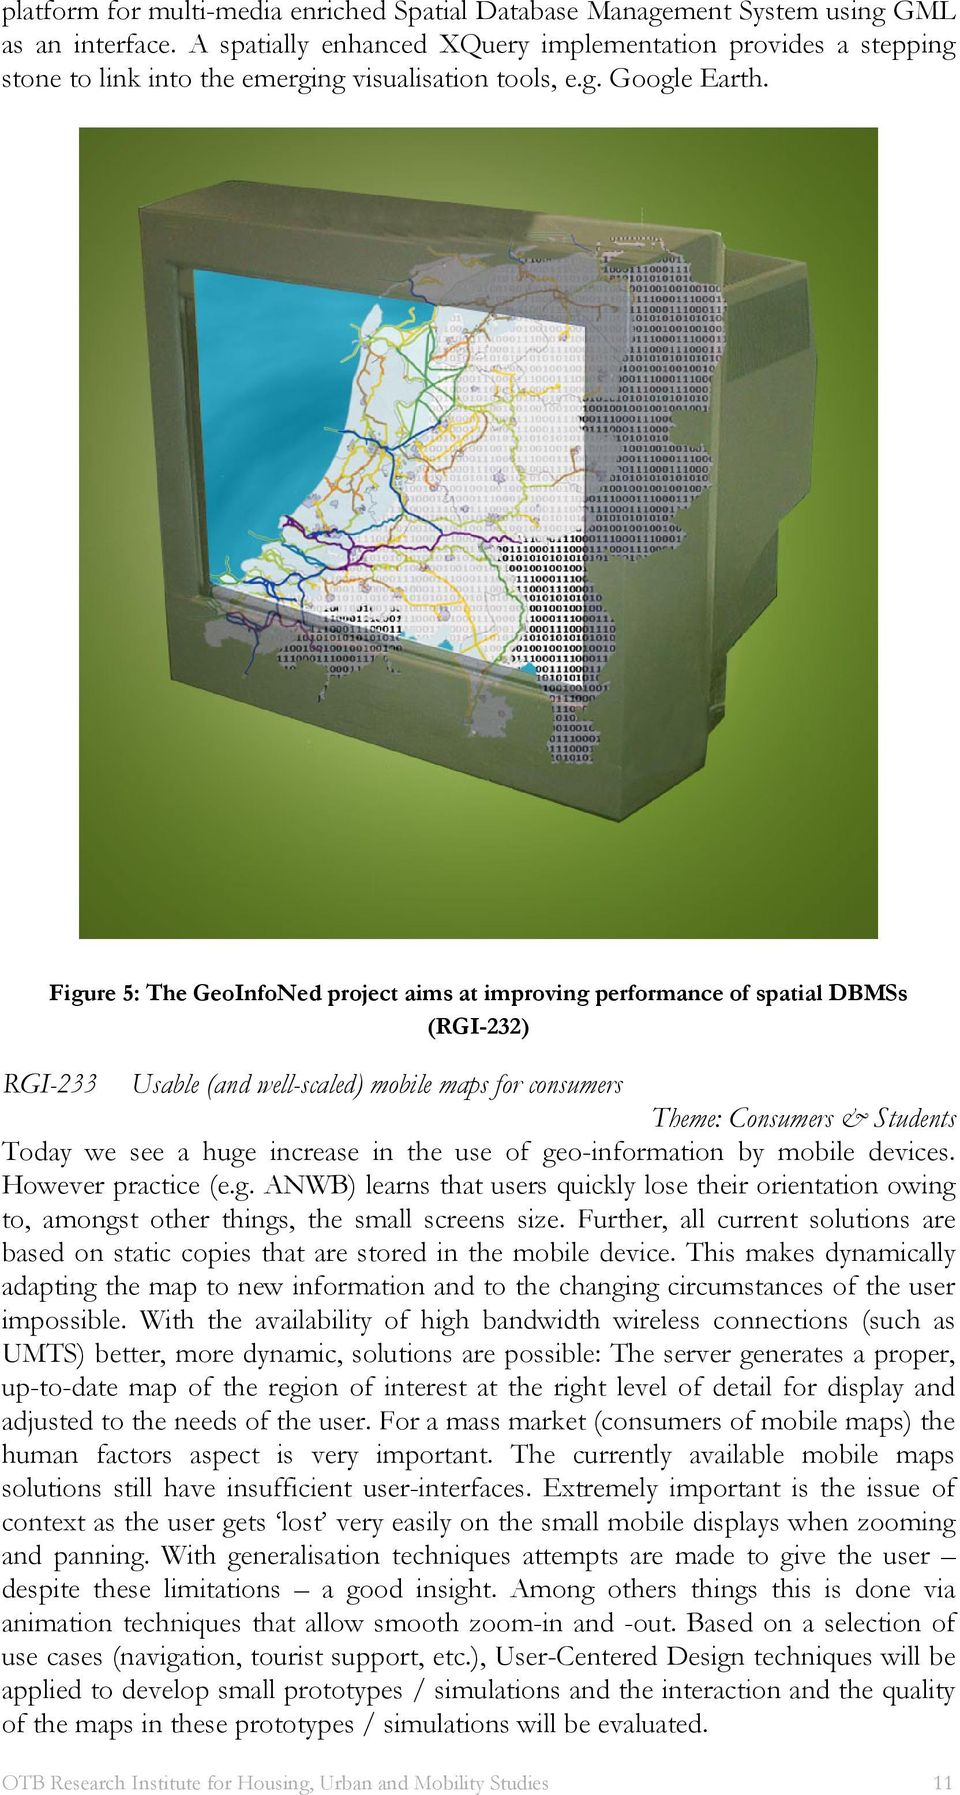 Figure 5: The GeoInfoNed project aims at improving performance of spatial DBMSs (RGI-232) RGI-233 Usable (and well-scaled) mobile maps for consumers Theme: Consumers & Students Today we see a huge